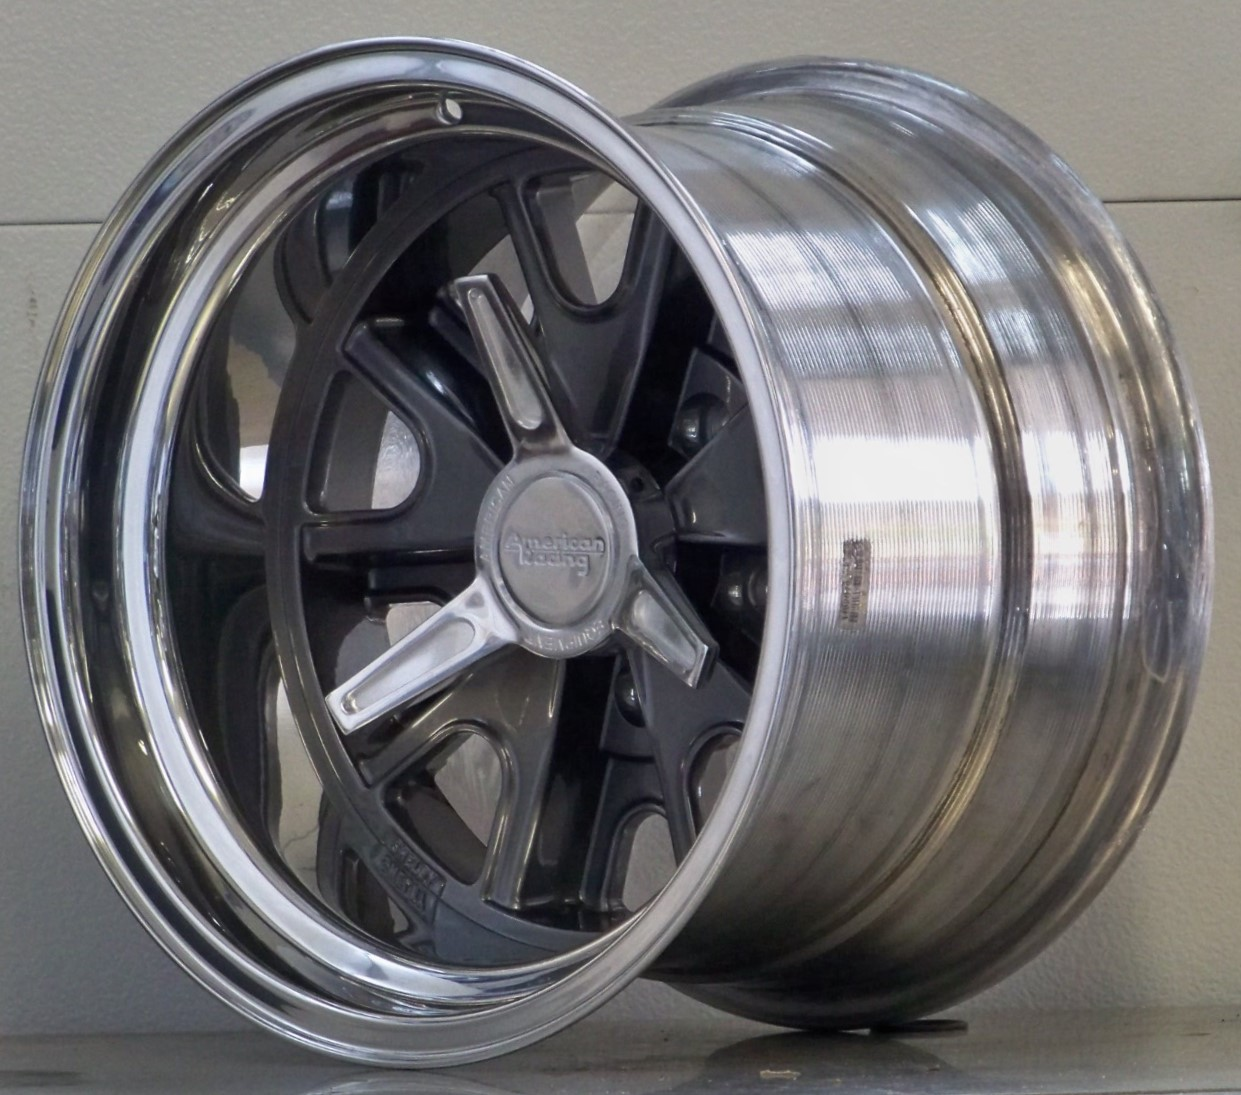 427 Shelby 5 lug gray inc.spinners (price shown per wheel)